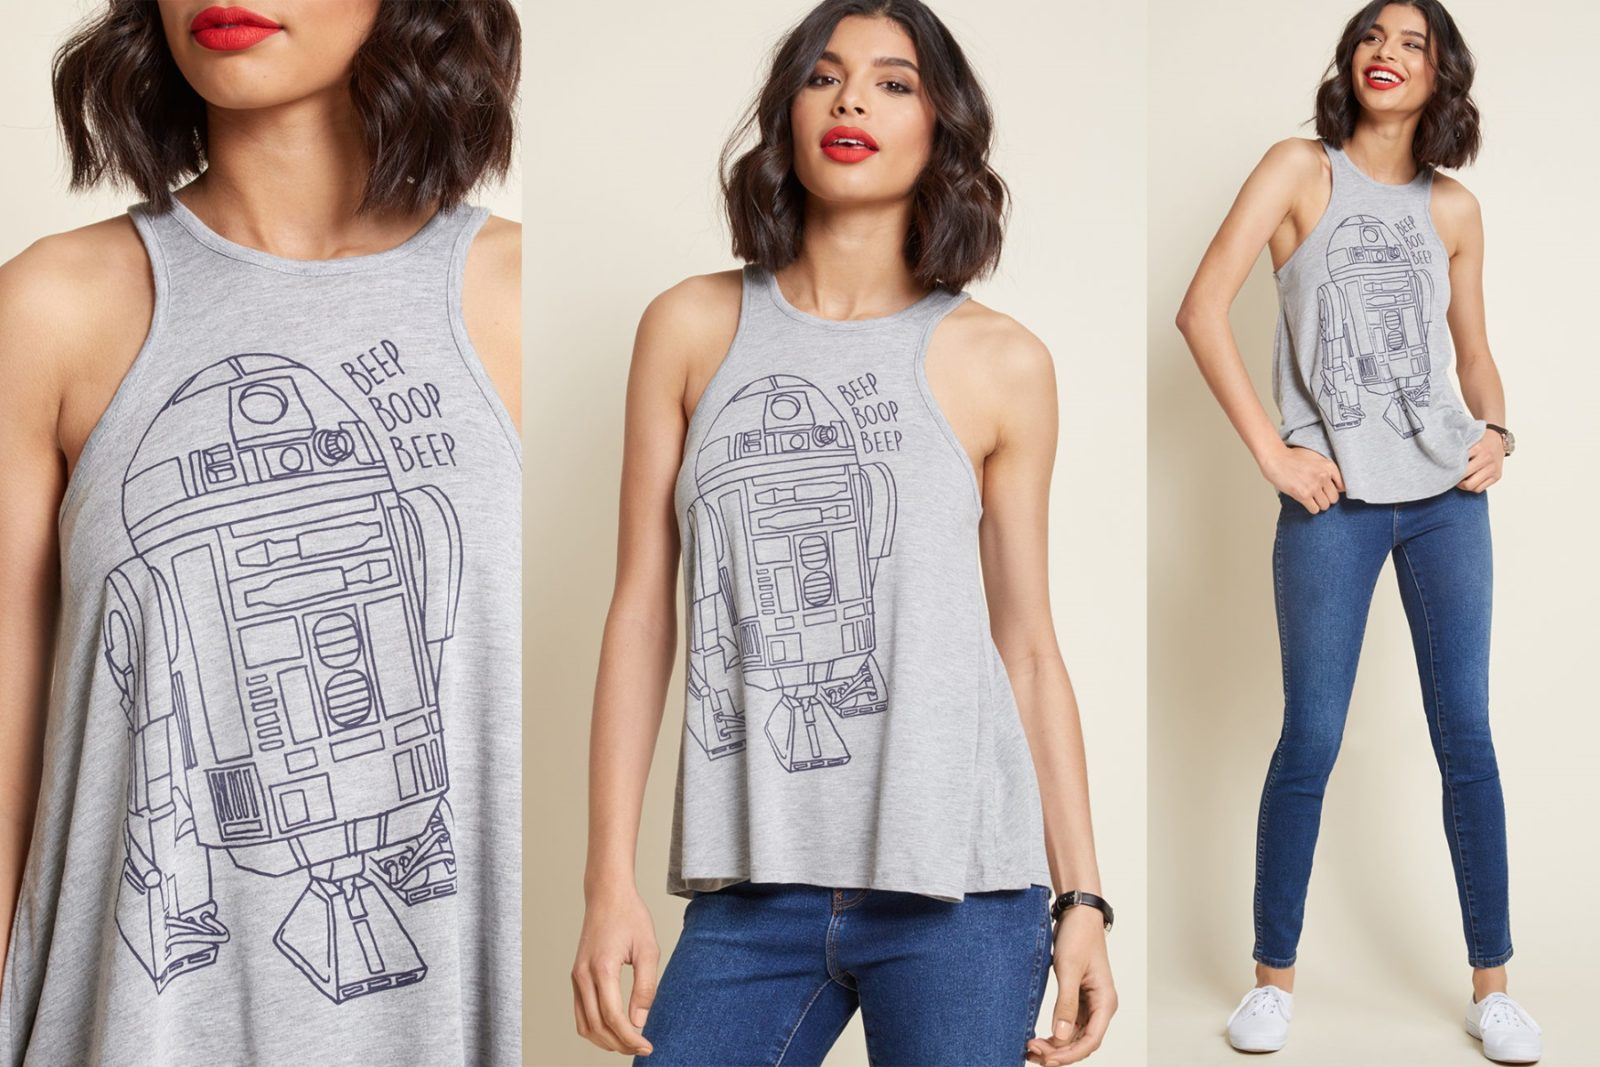 Women's R2-D2 Tank Top at ModCloth